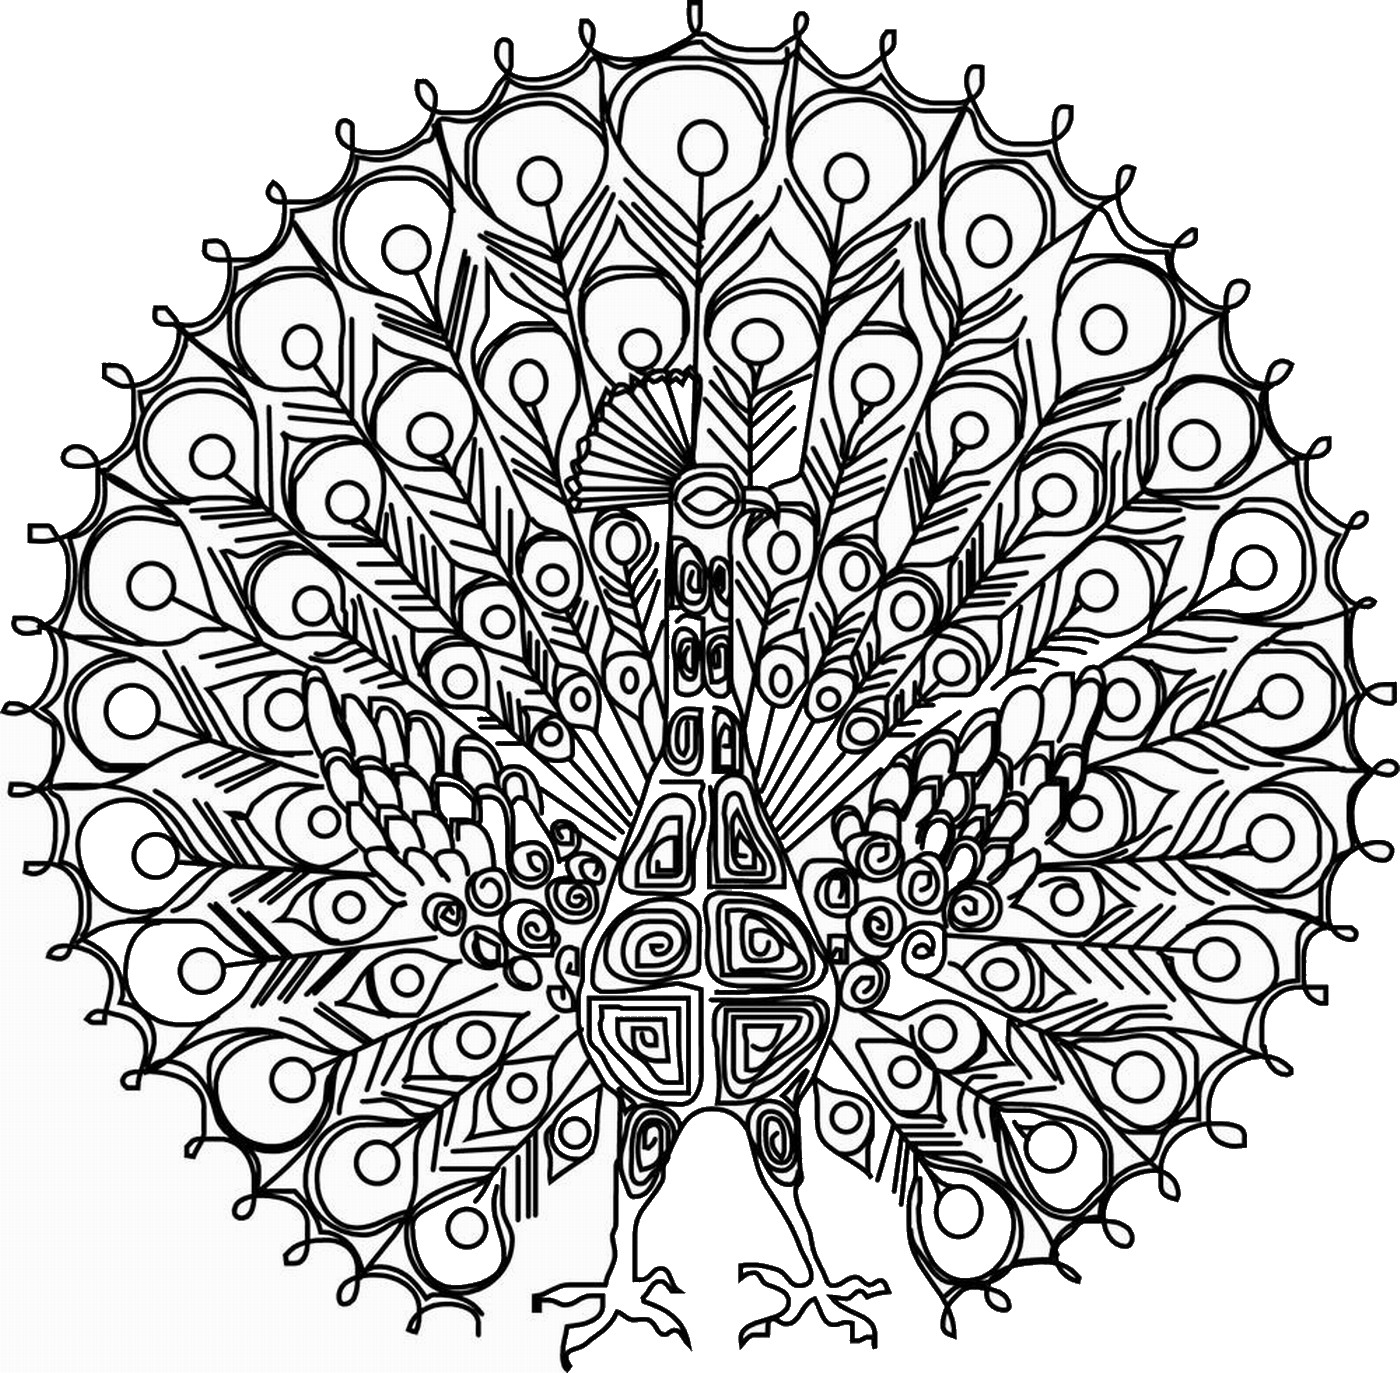 crazy creatures coloring pages - photo#39